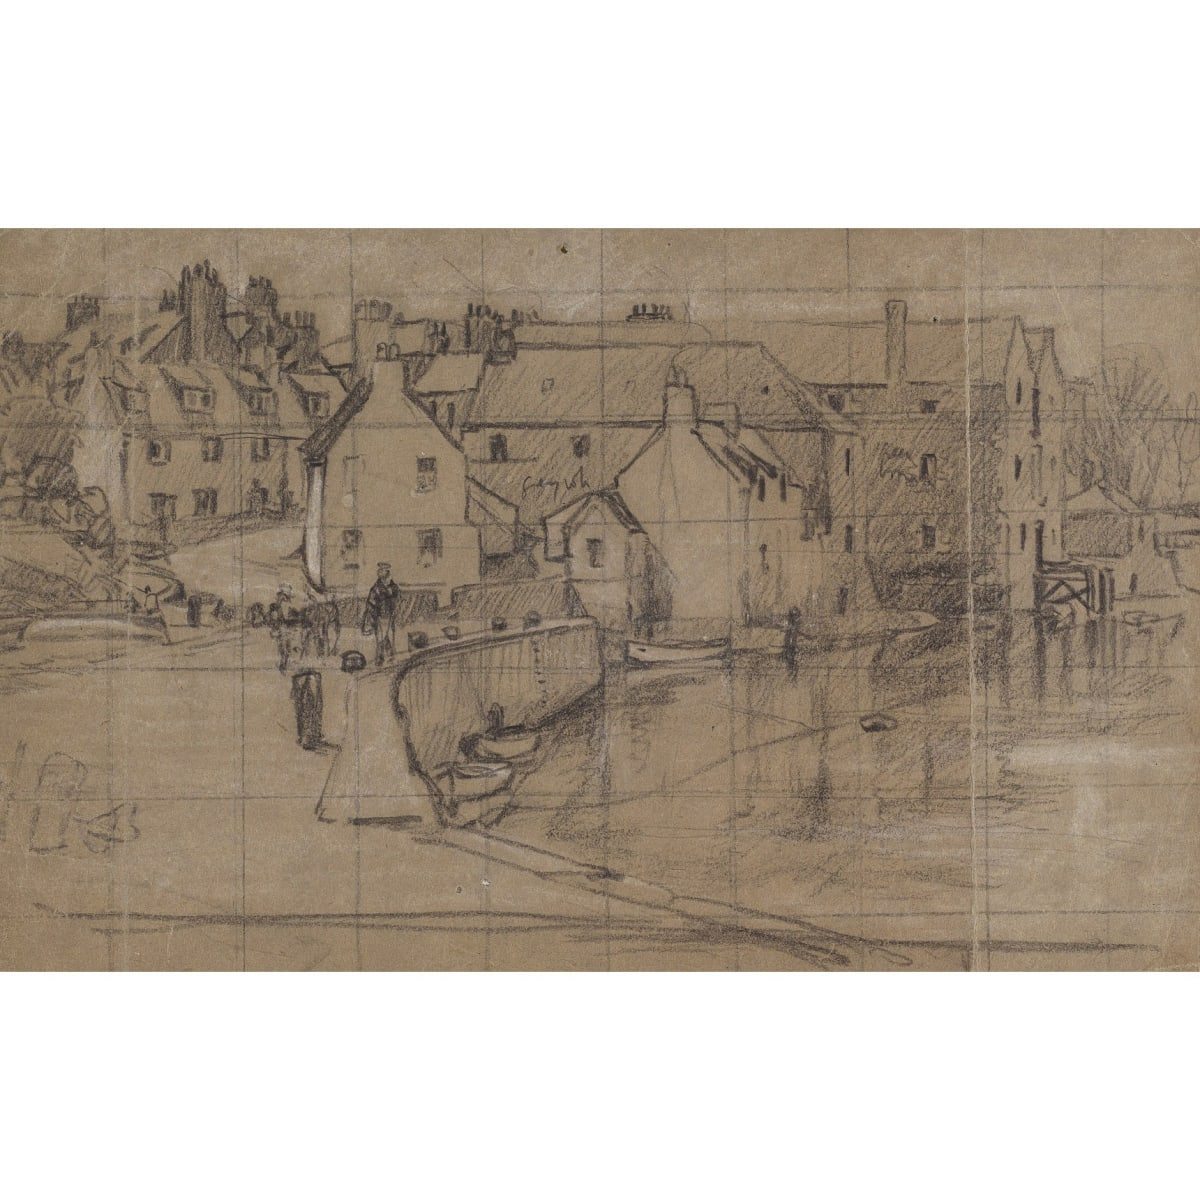 Charles Oppenheimer The Harbour, Kirkcudbright inscribed 3.30 pastel and pencil 6 x 9 3/4 inches